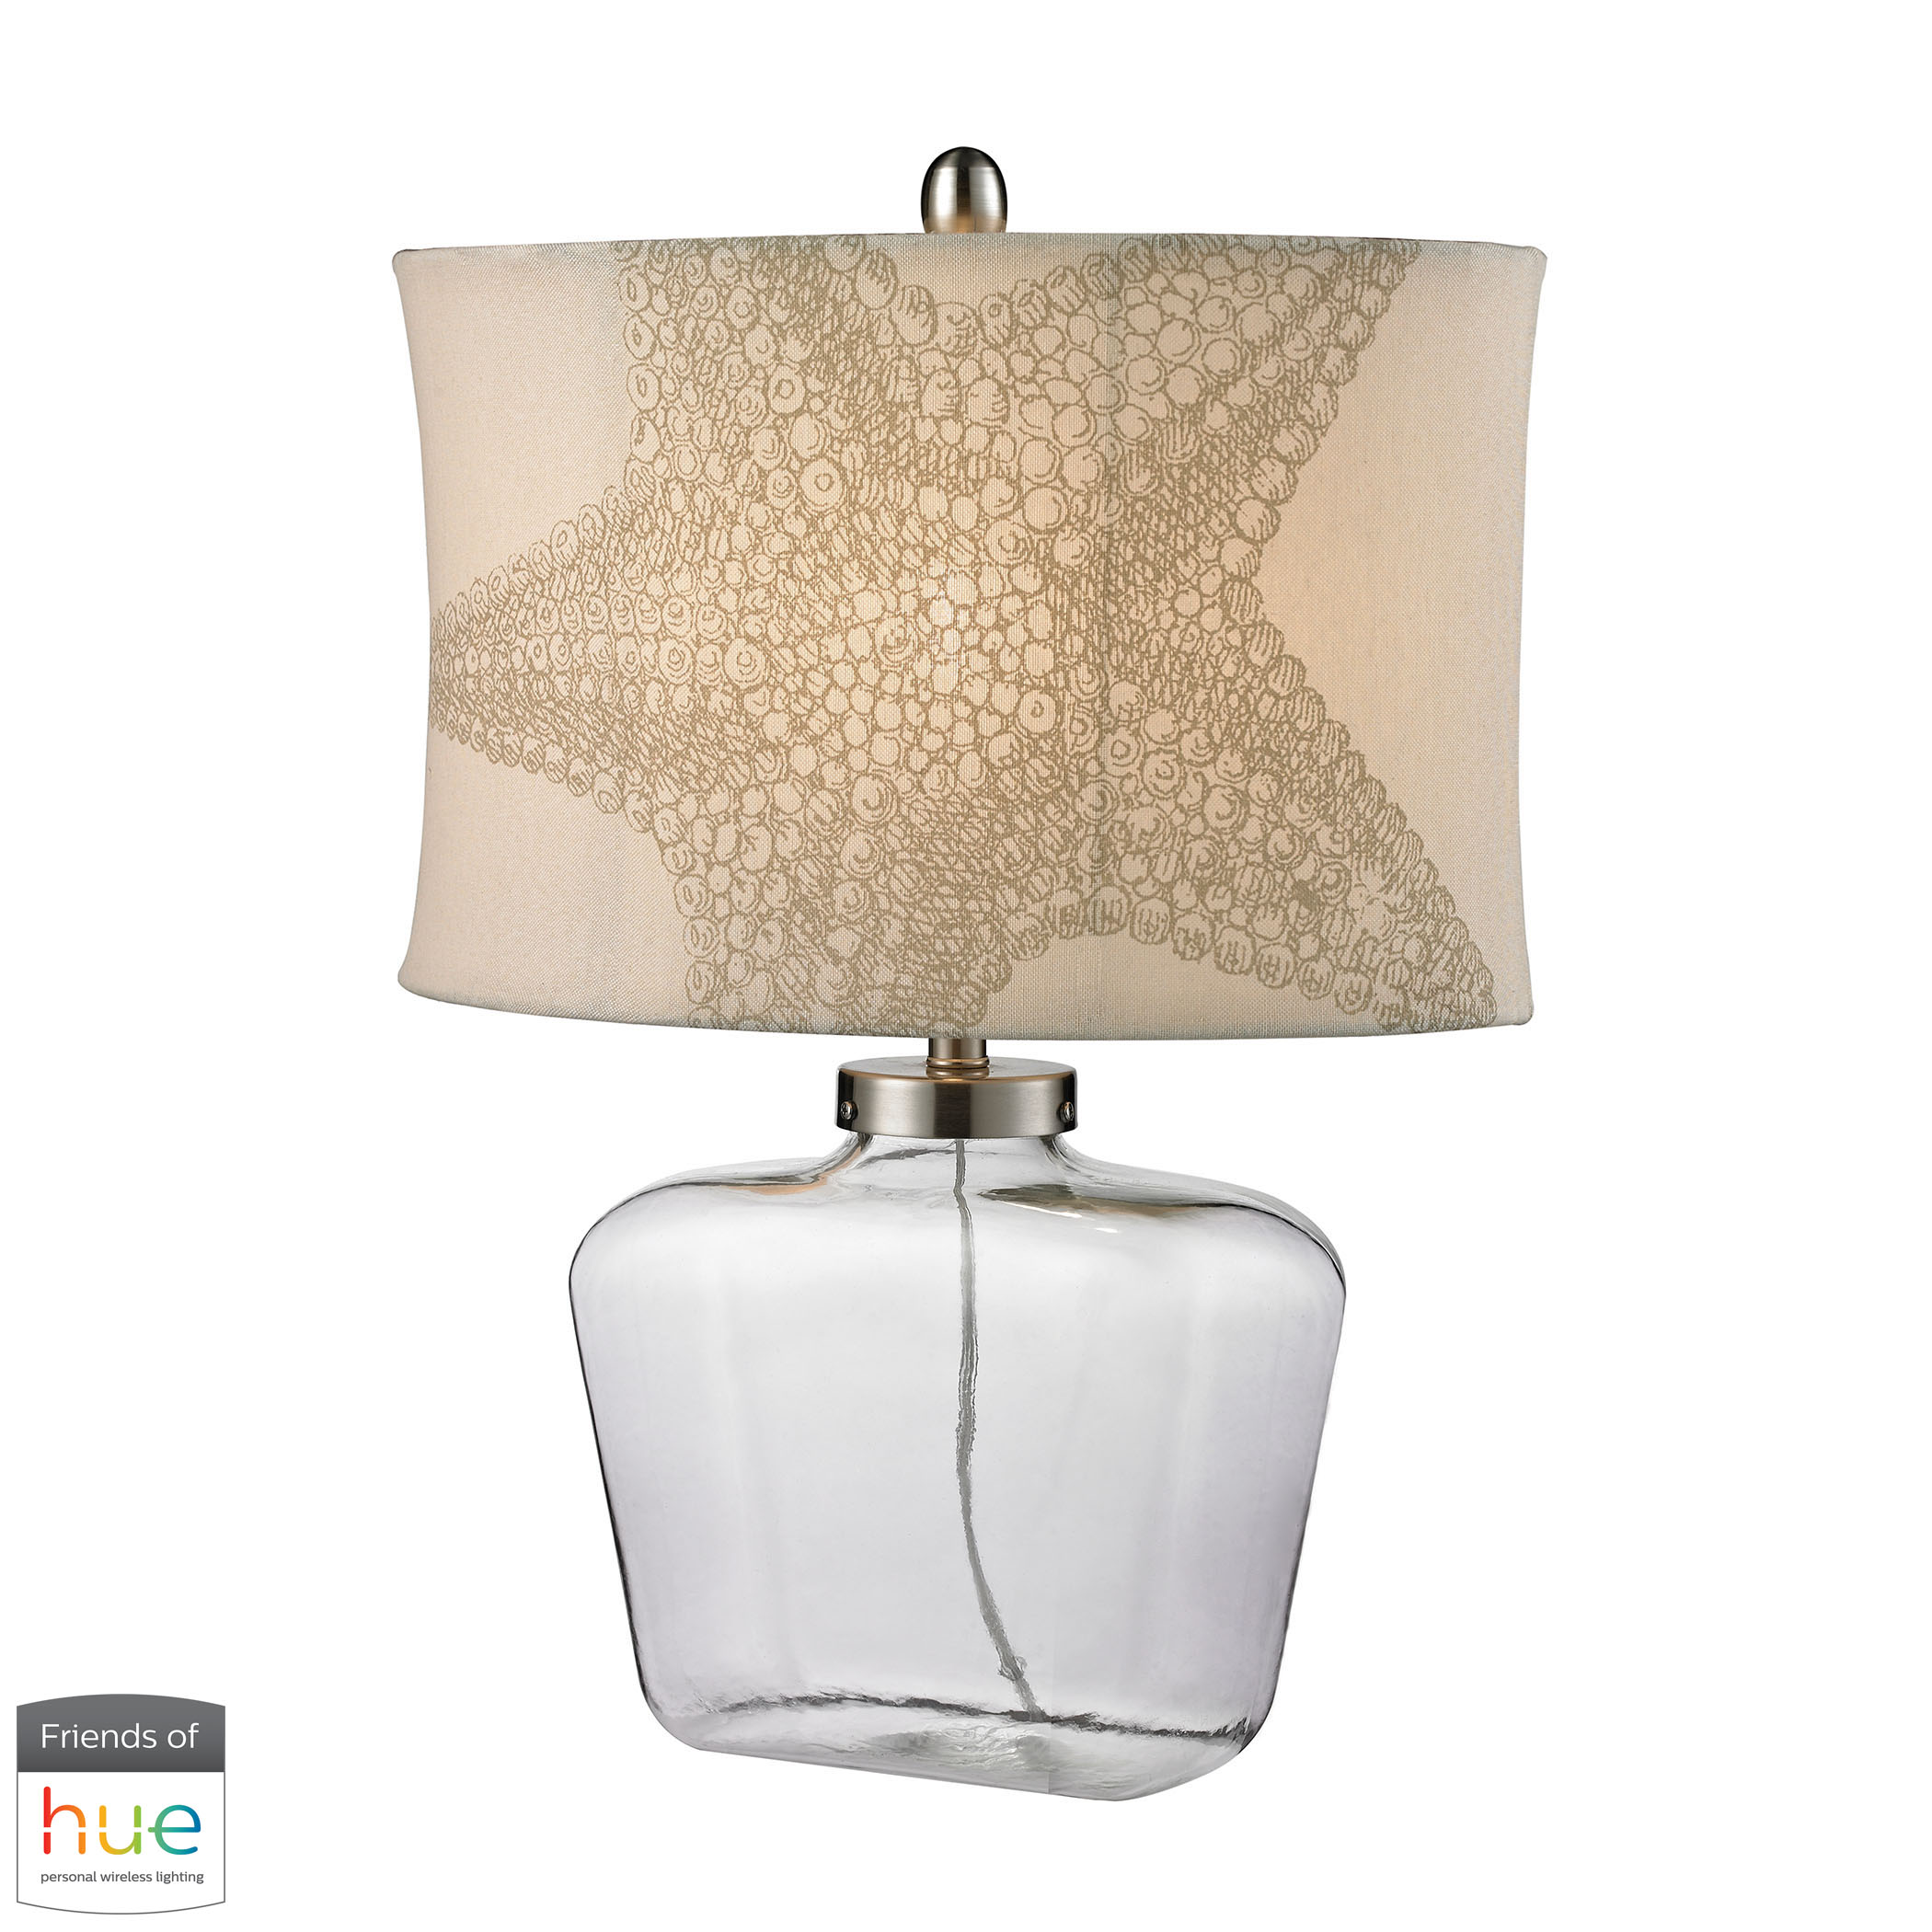 Clear Glass Bottle Table Lamp in Polished Nickel- Philips Hue LED Bulb/Dimmer